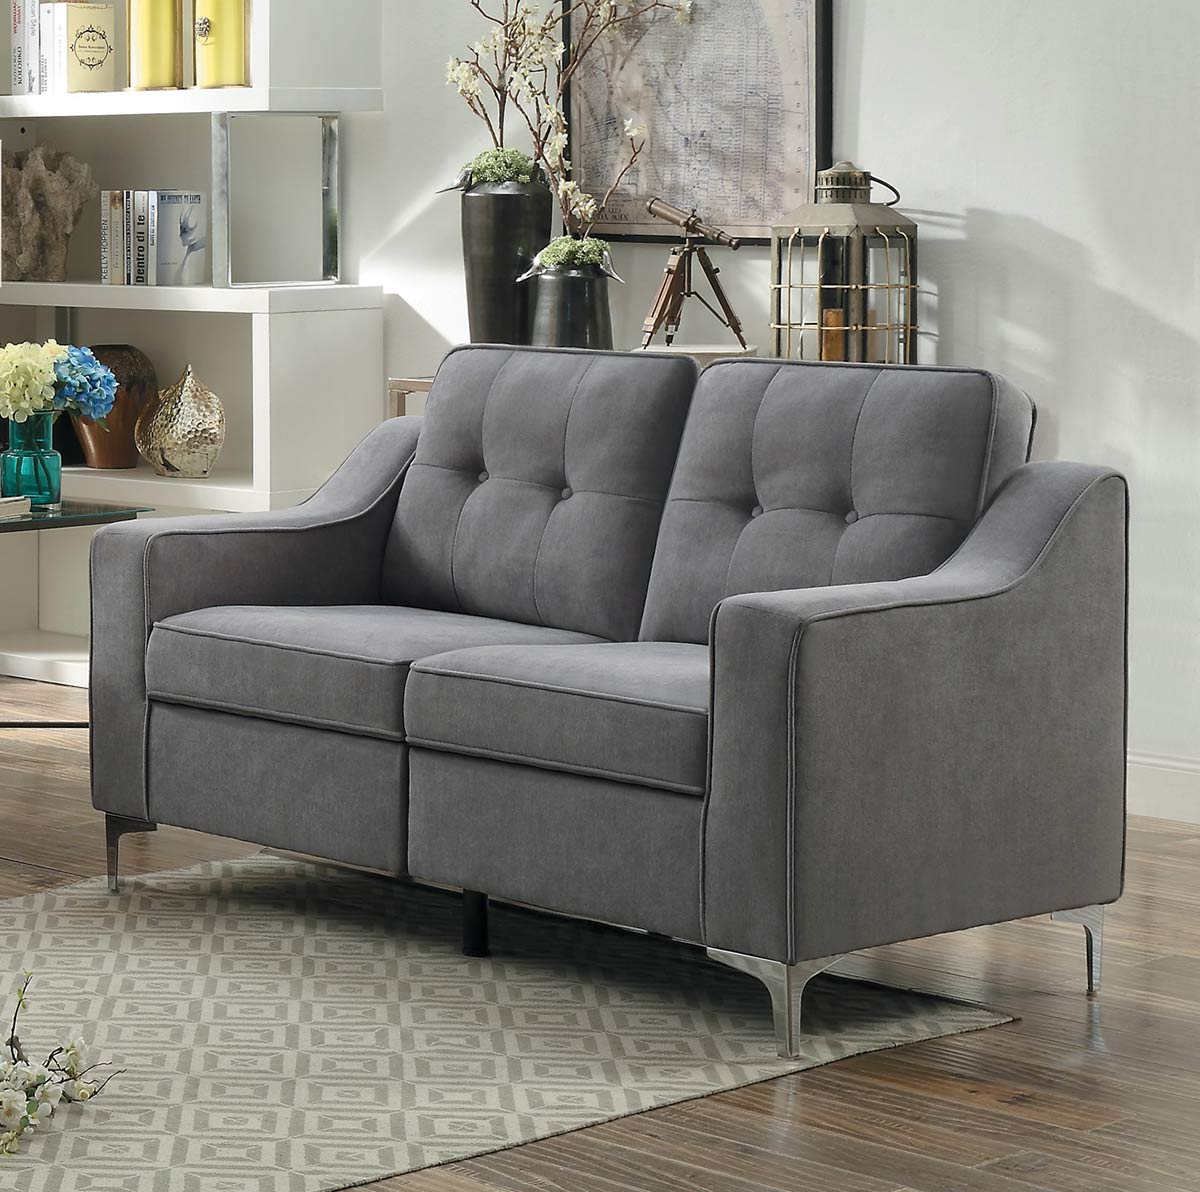 Homelegance Murana Love Seat - Gray